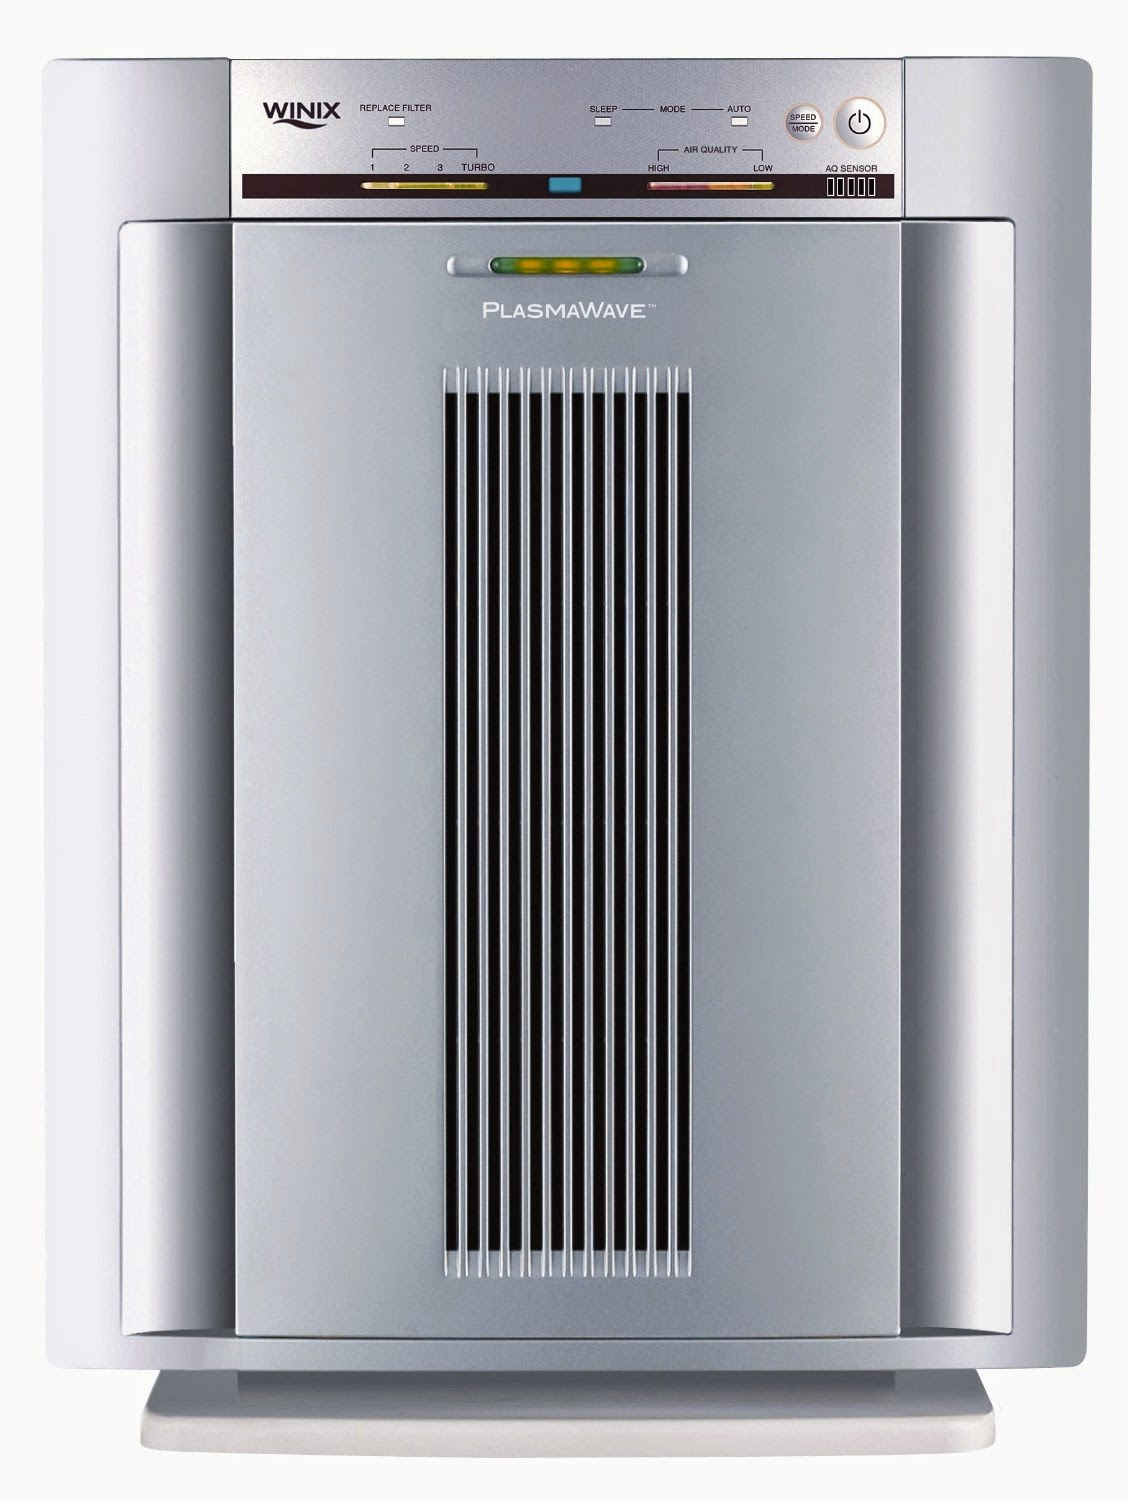 Winix WAC5300 PlasmaWave True HEPA Air Cleaner, picture, image, review features and specifications plus compare with Winix WAC5300